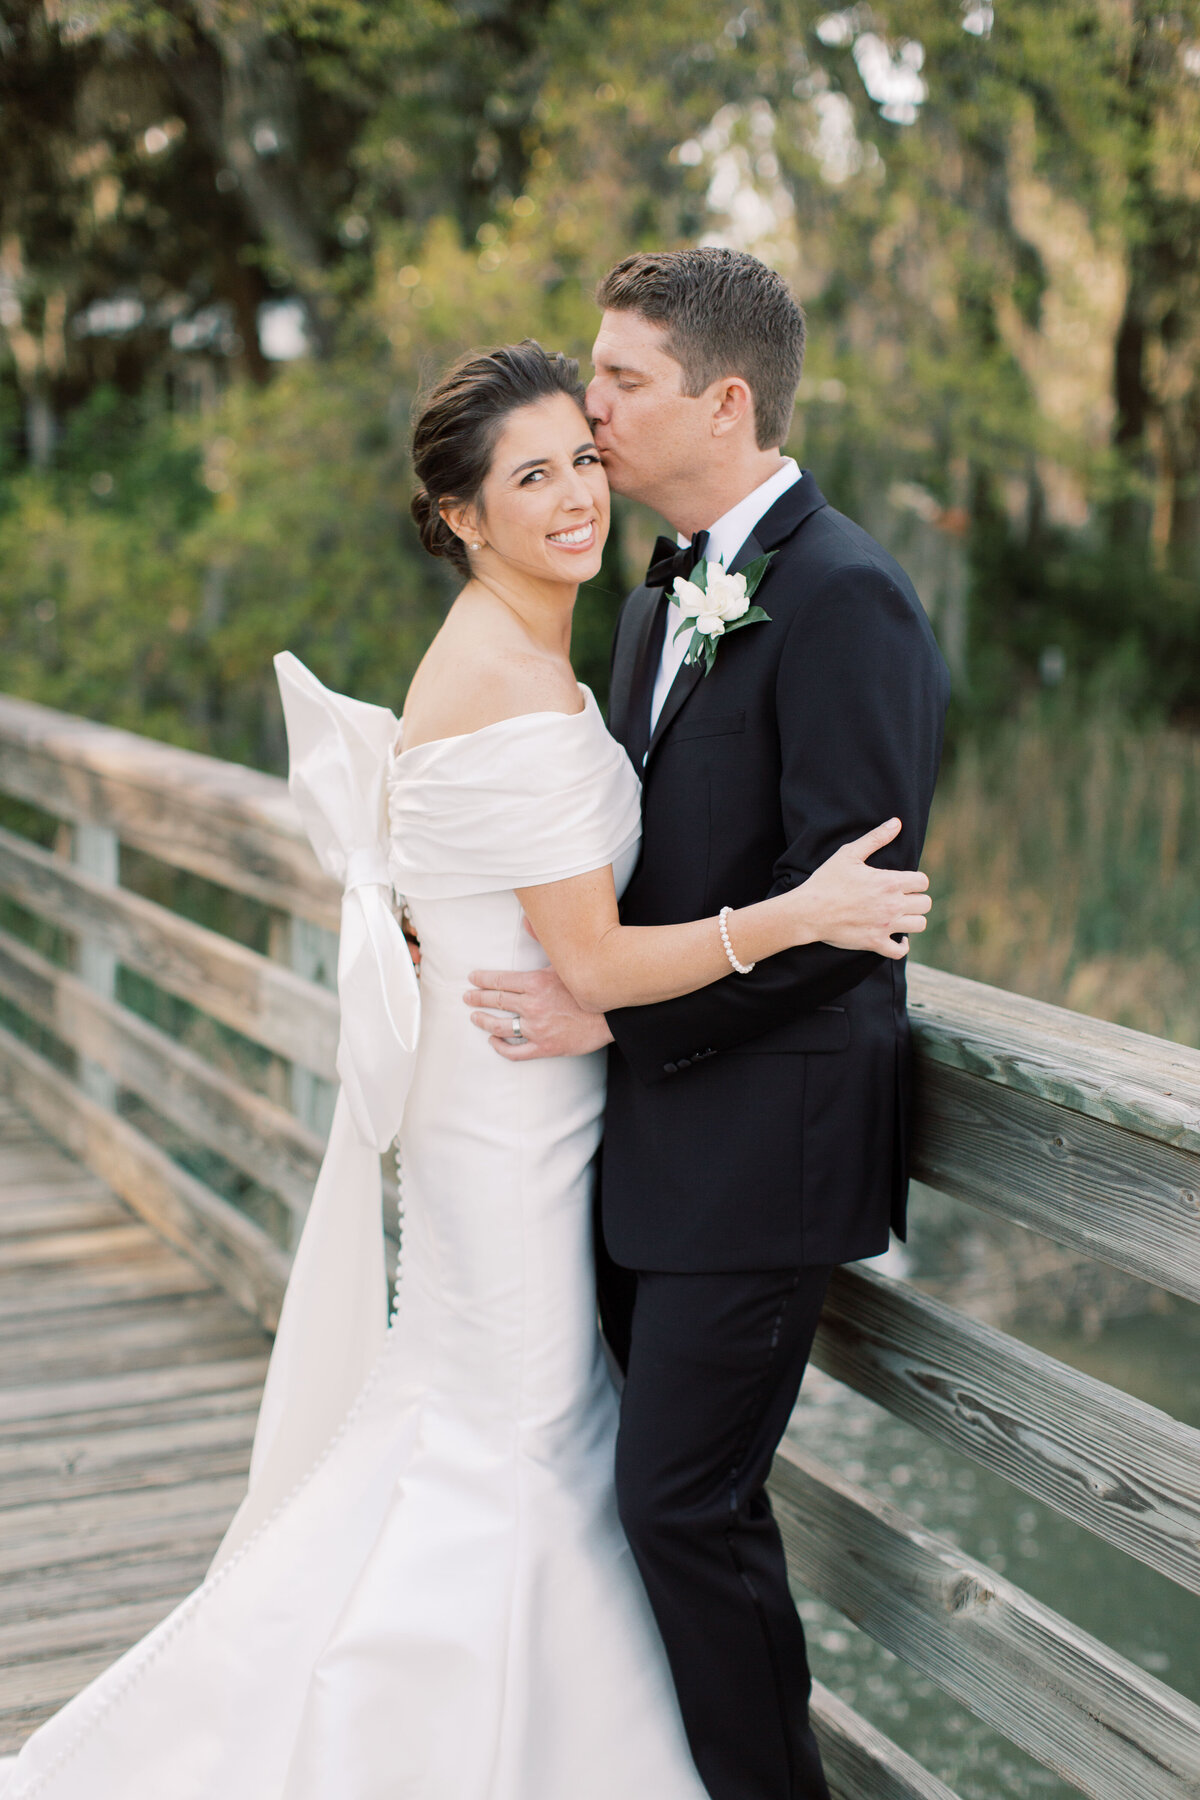 Powell_Oldfield_River_Club_Bluffton_South_Carolina_Beaufort_Savannah_Wedding_Jacksonville_Florida_Devon_Donnahoo_Photography_0764